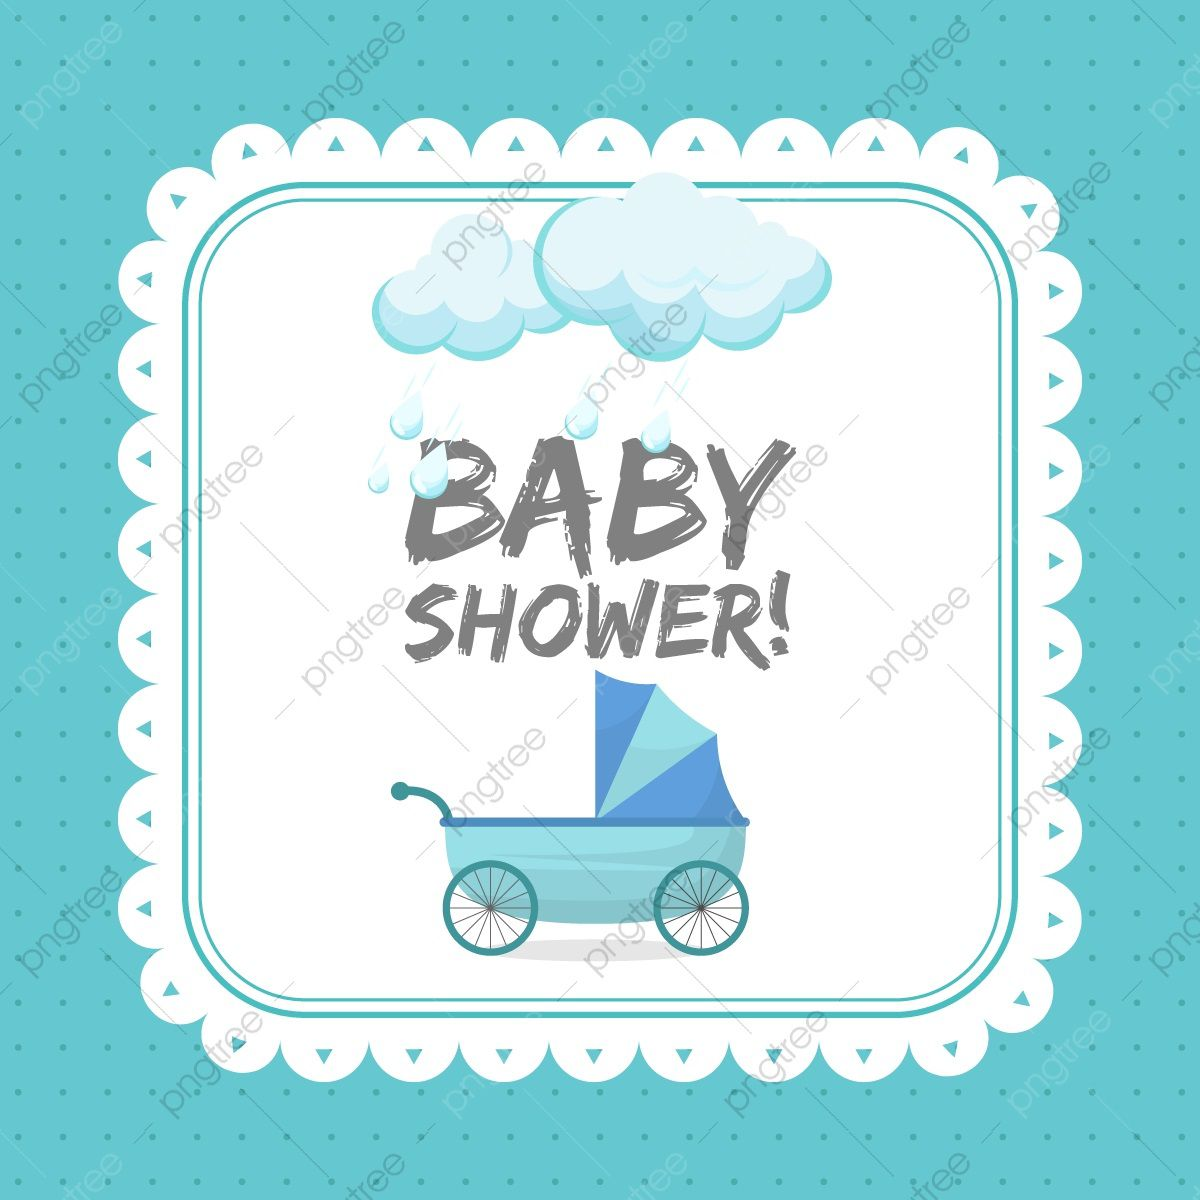 010 Unforgettable Baby Shower Card Template Free Download High Resolution  Indian InvitationFull